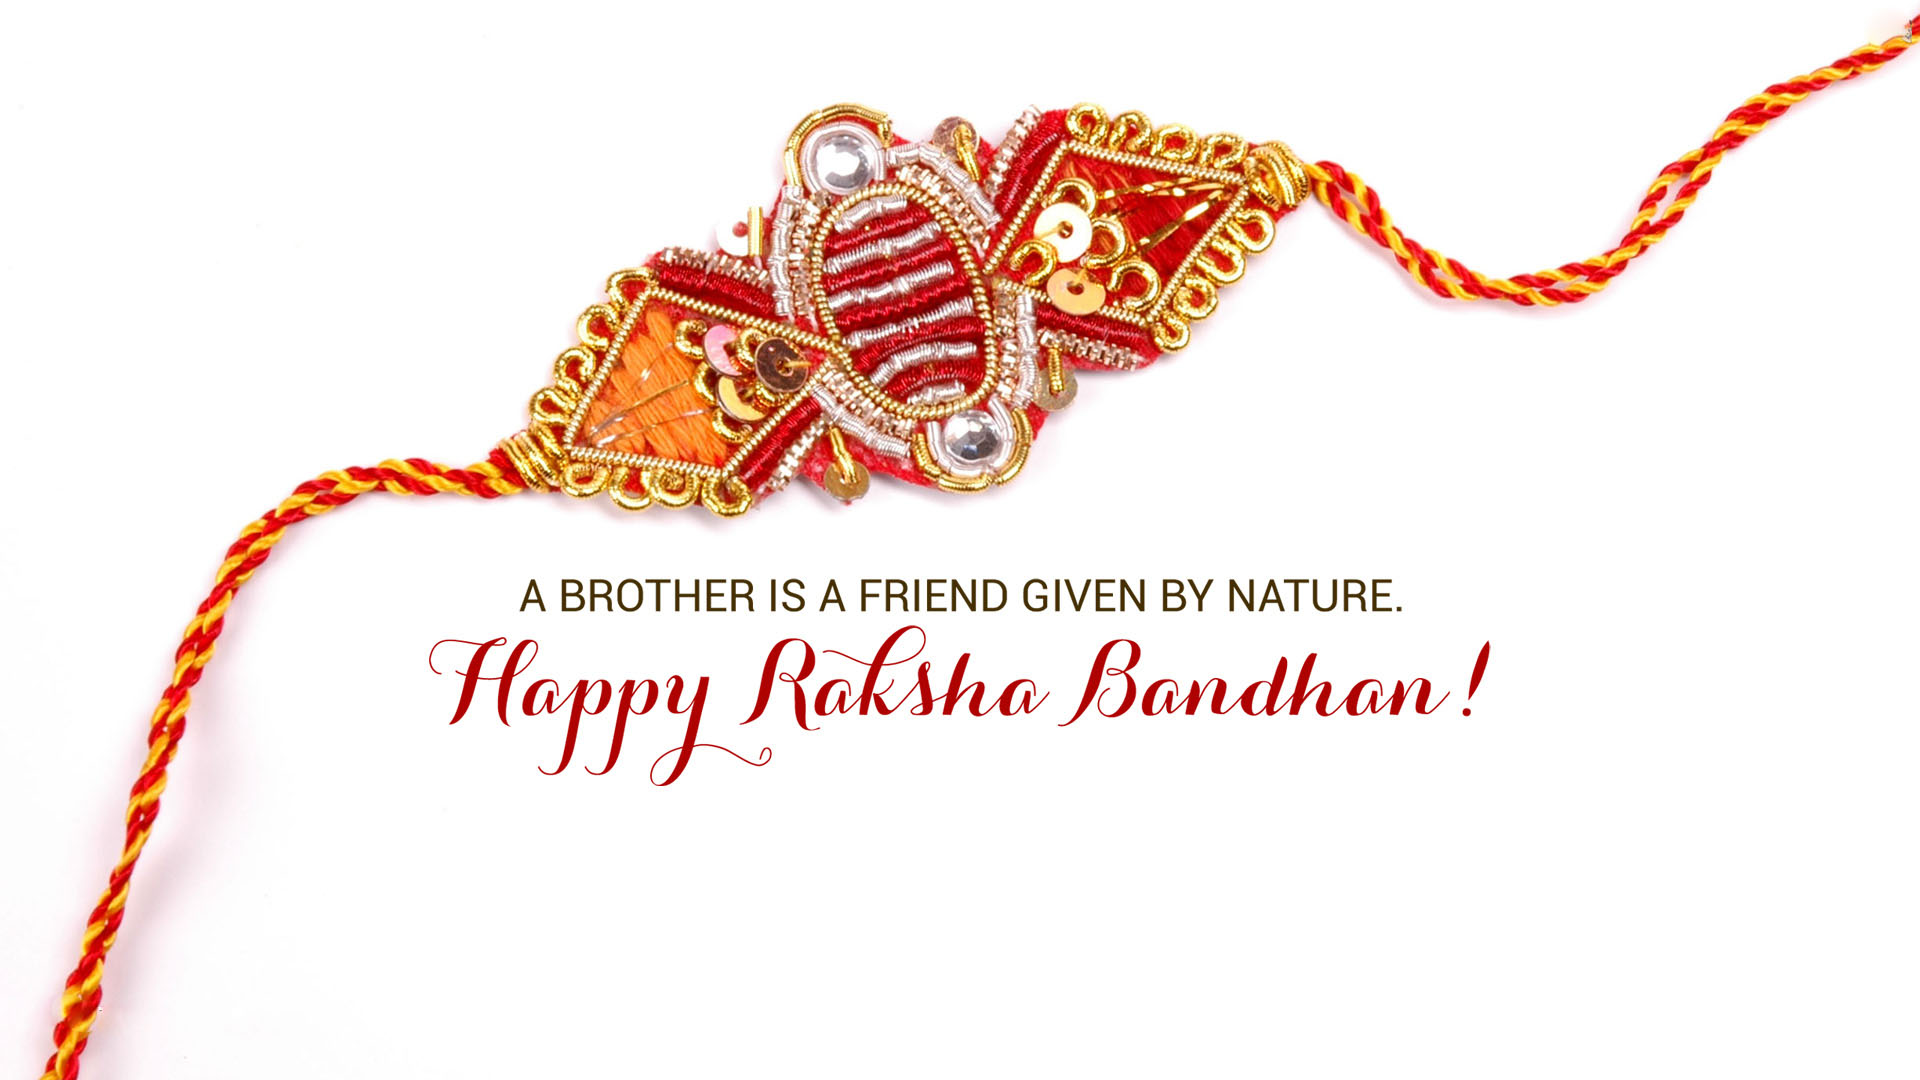 Happy Raksha Bandhan HD Images, Wallpapers for Whatsapp DP